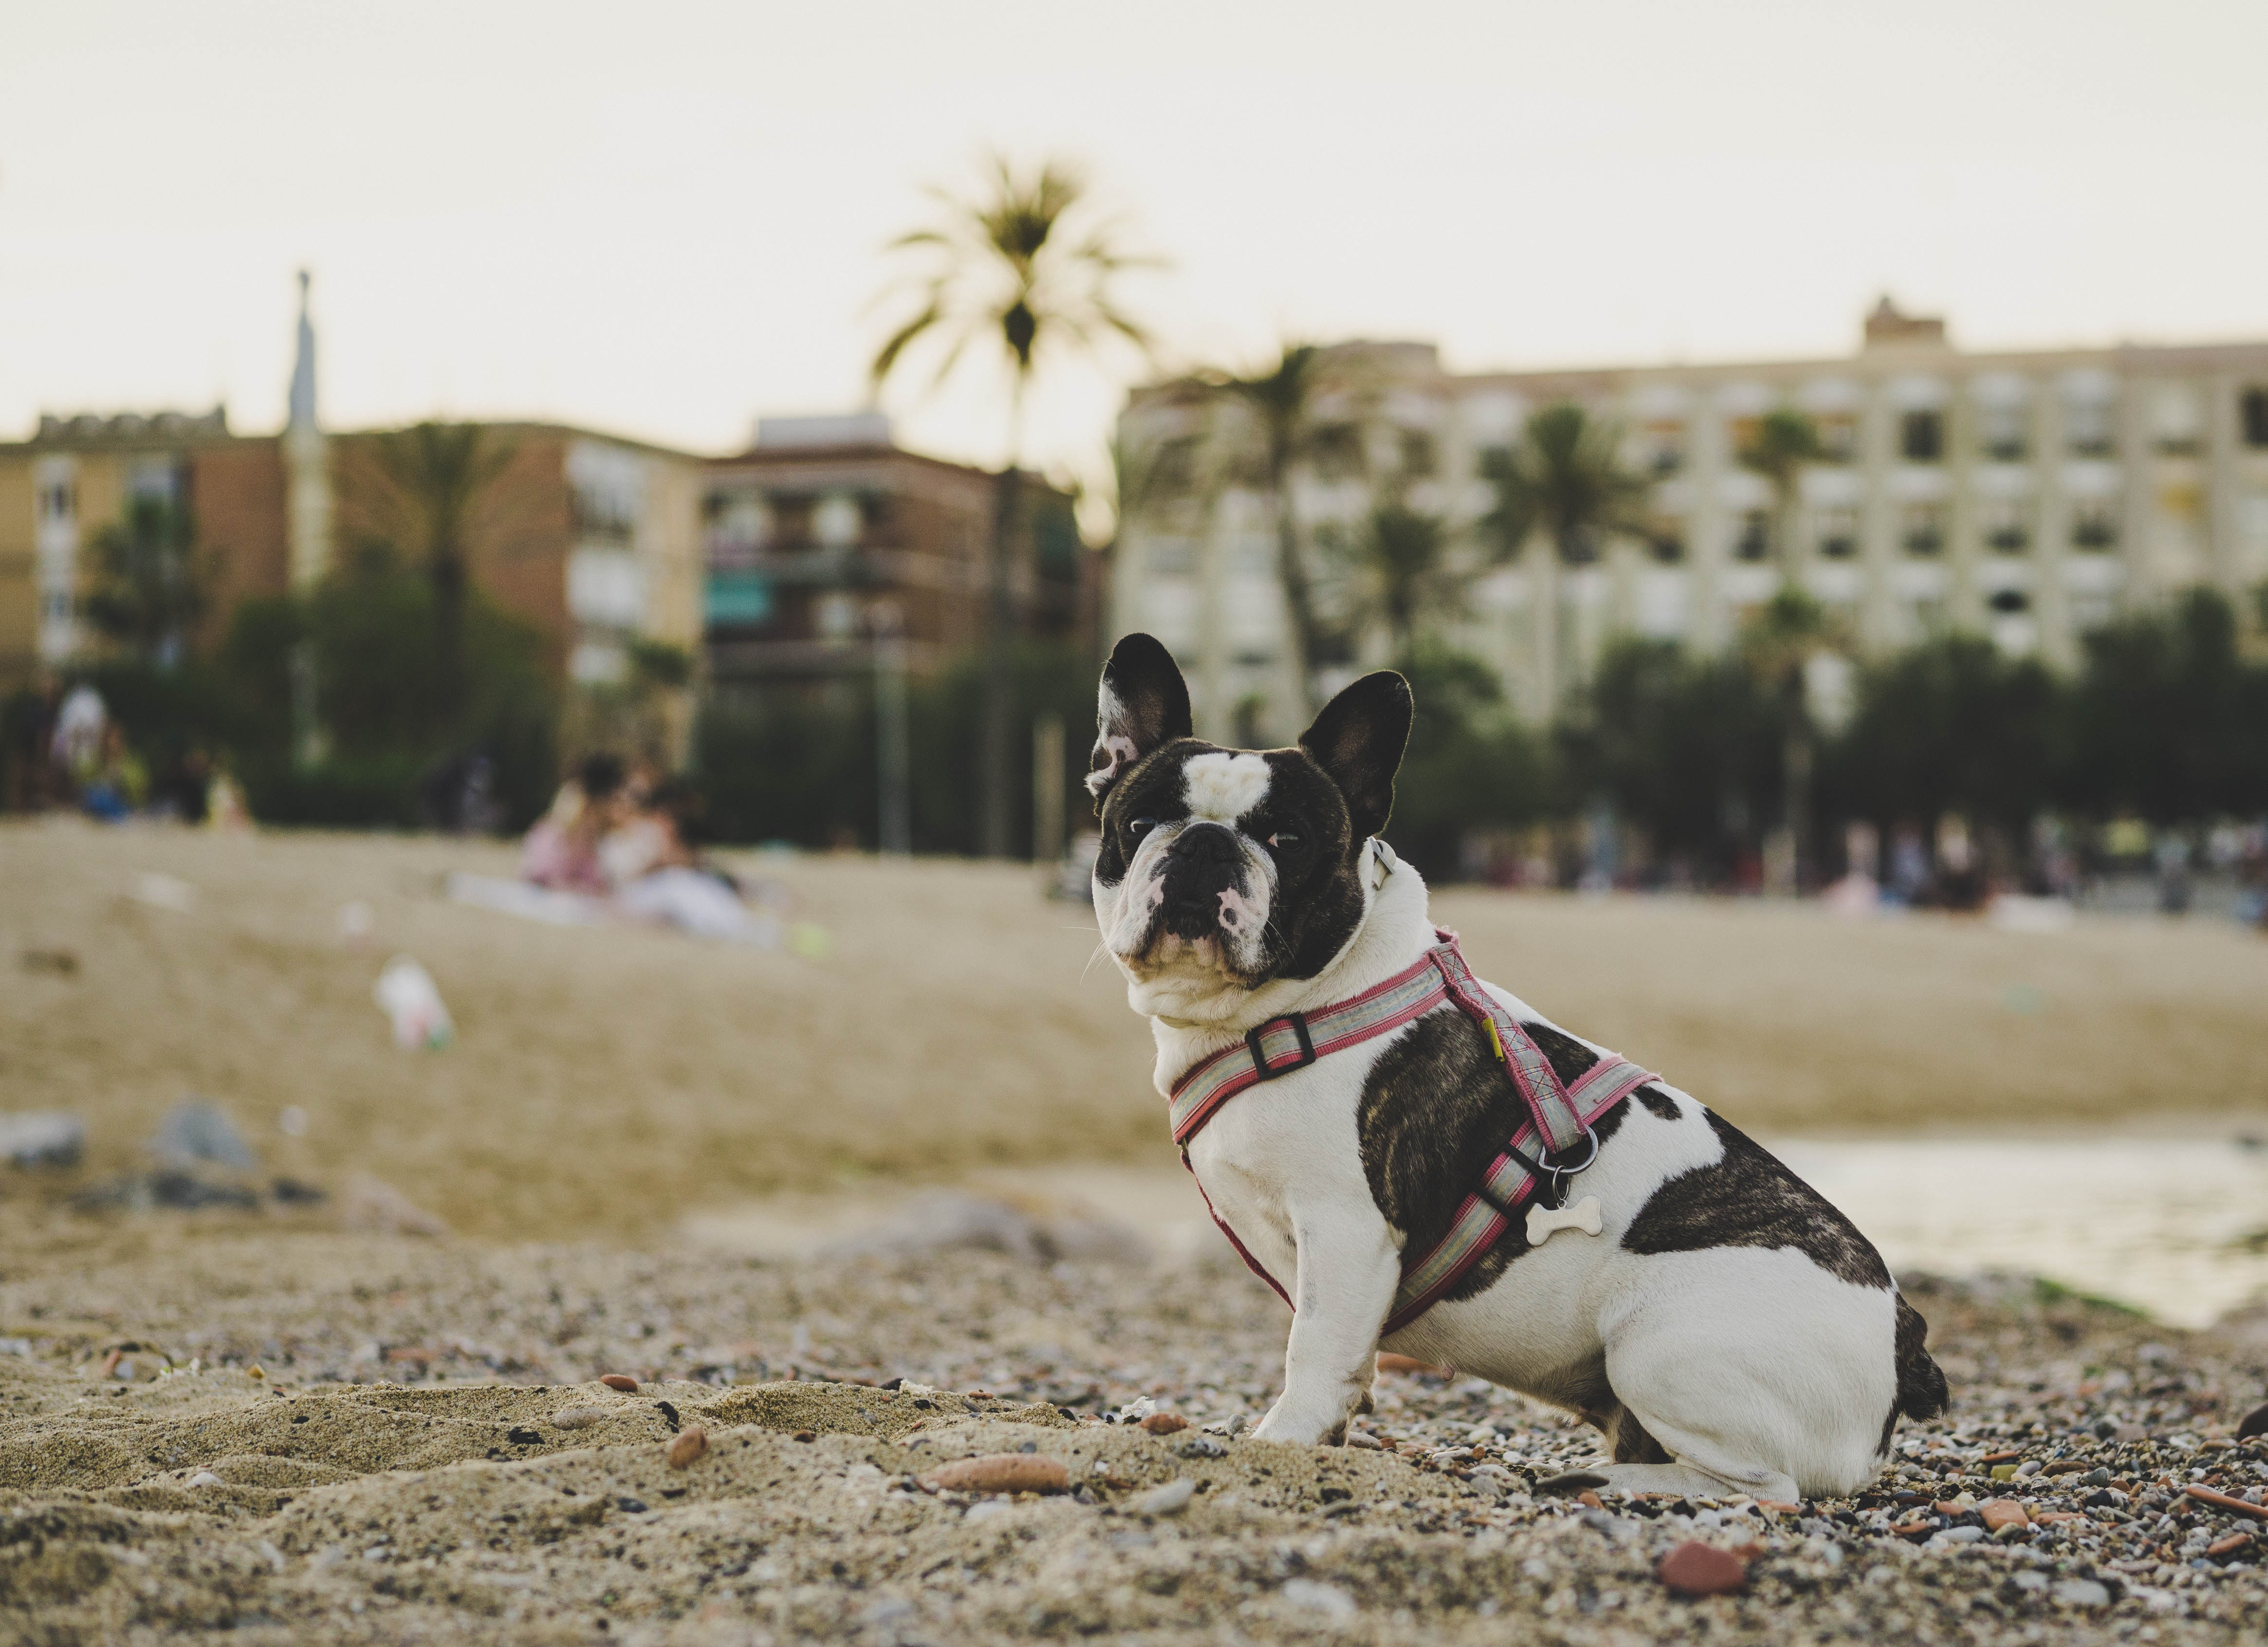 108726 download wallpaper Animals, Bulldog, Dog, Is Sitting, Sits, Sand, Stones screensavers and pictures for free